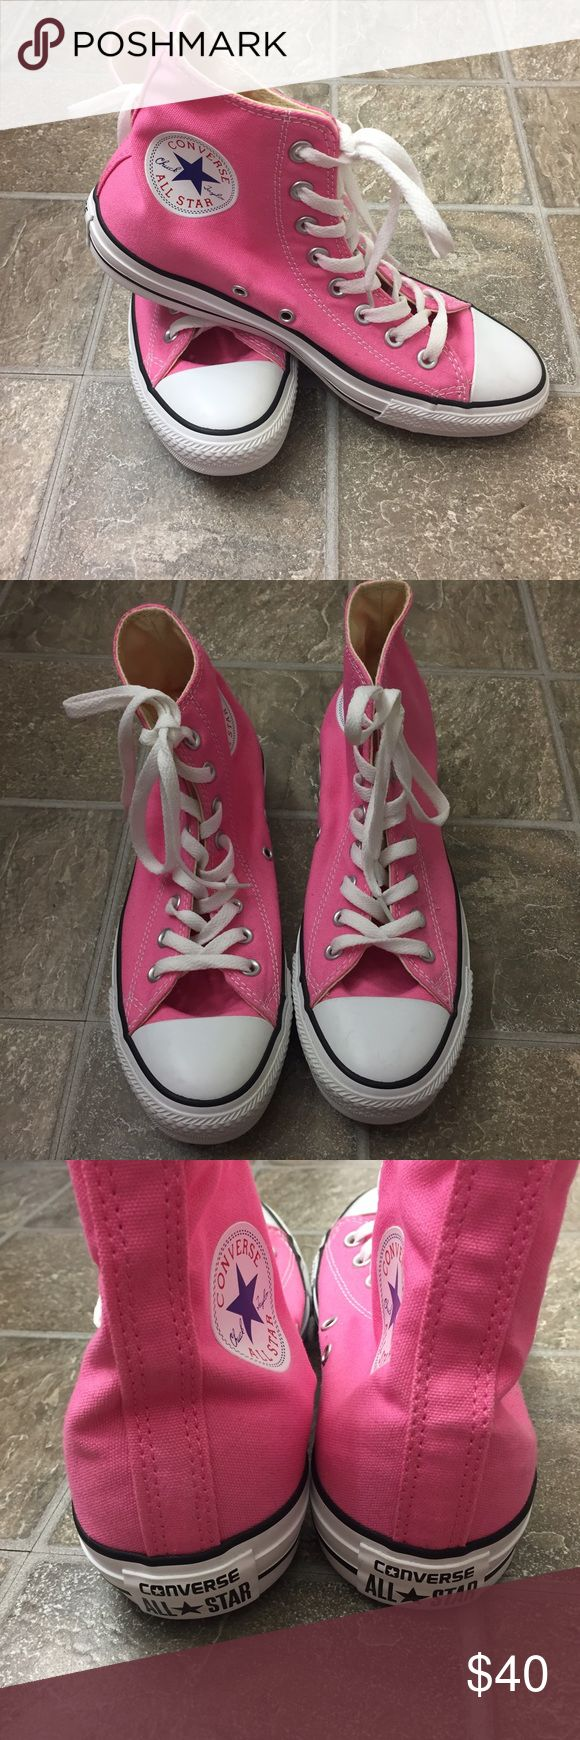 Pink high top converse These are a pair of pink high top converse for sale :) Converse Shoes Sneakers